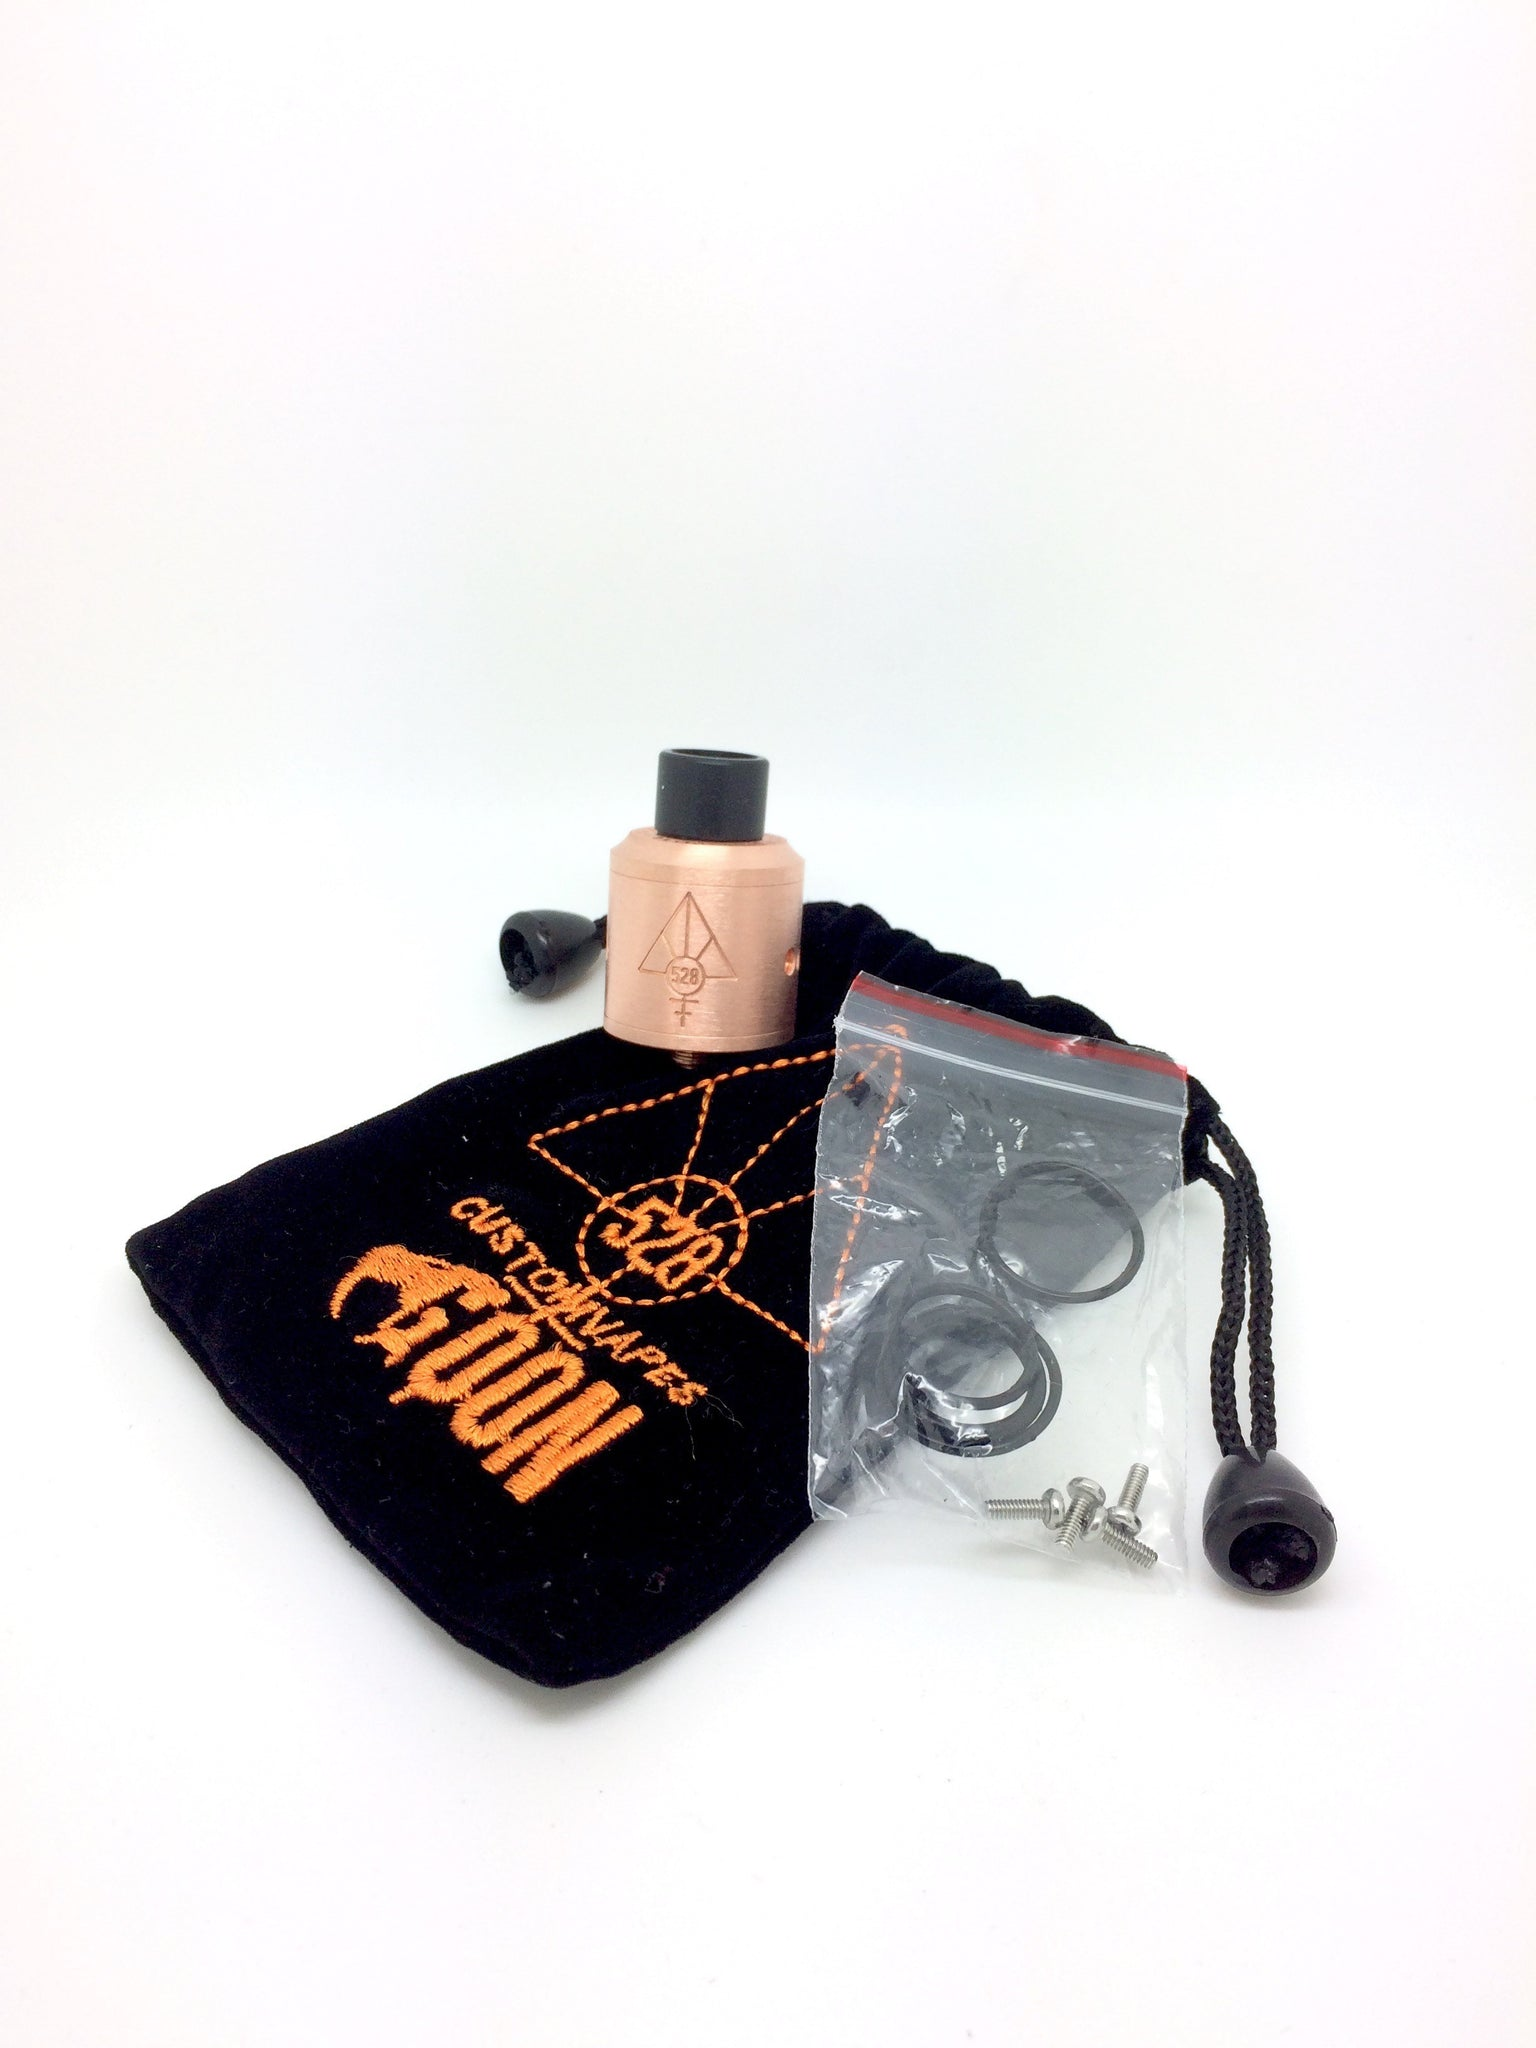 24mm copper goon rda